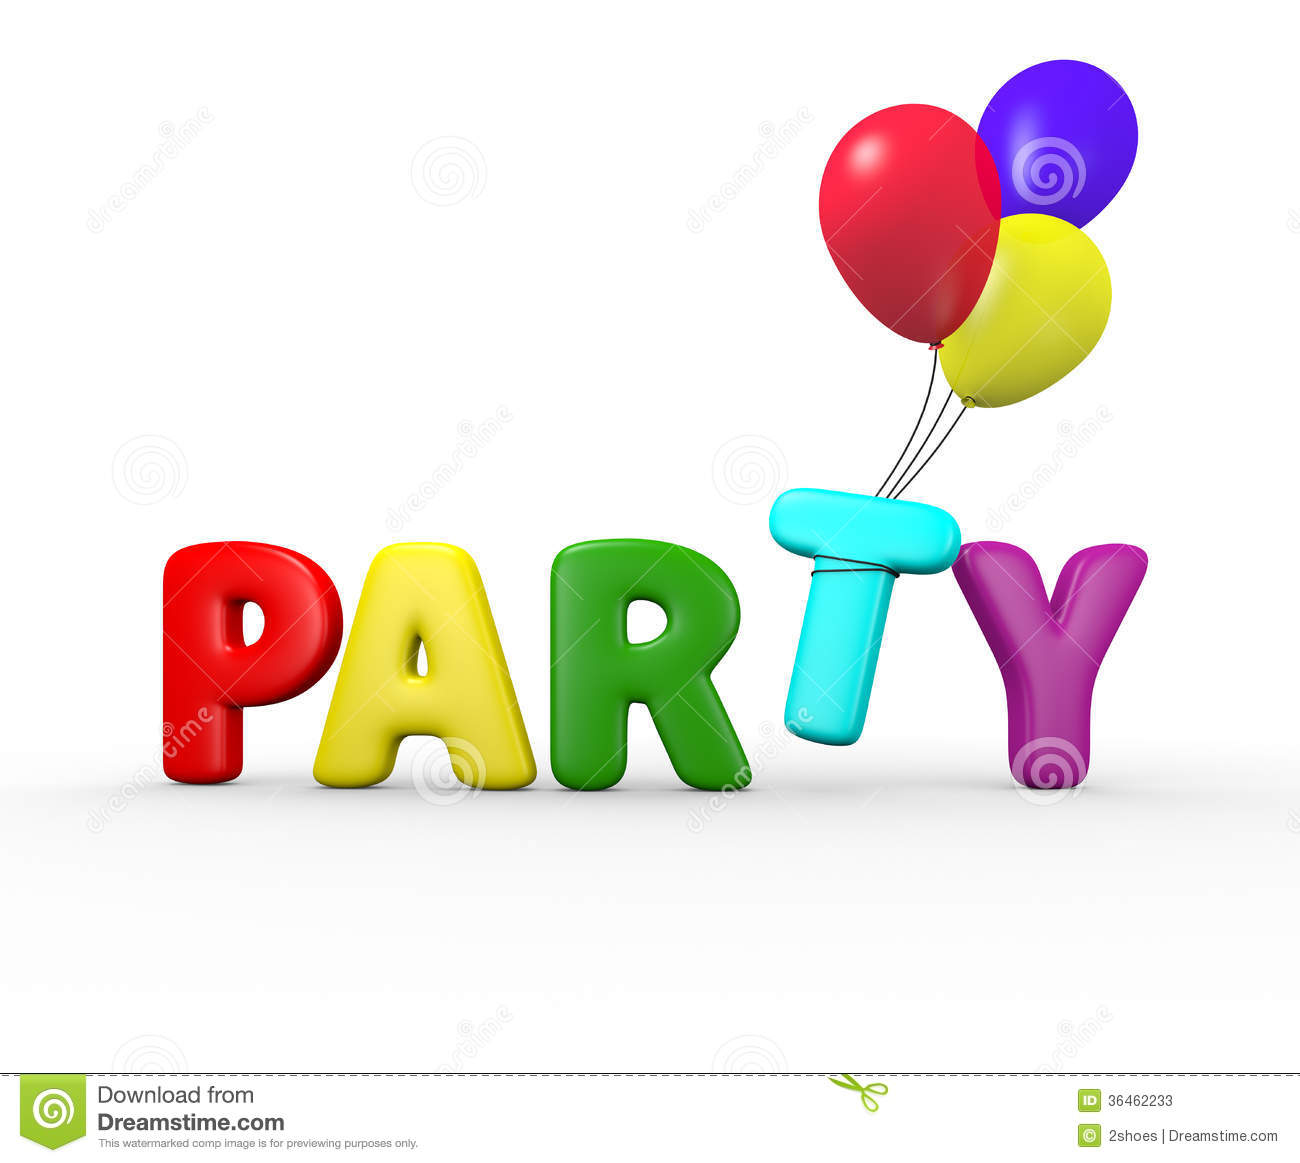 party-balloons-d-text-carrying-away-t-36462233.jpg